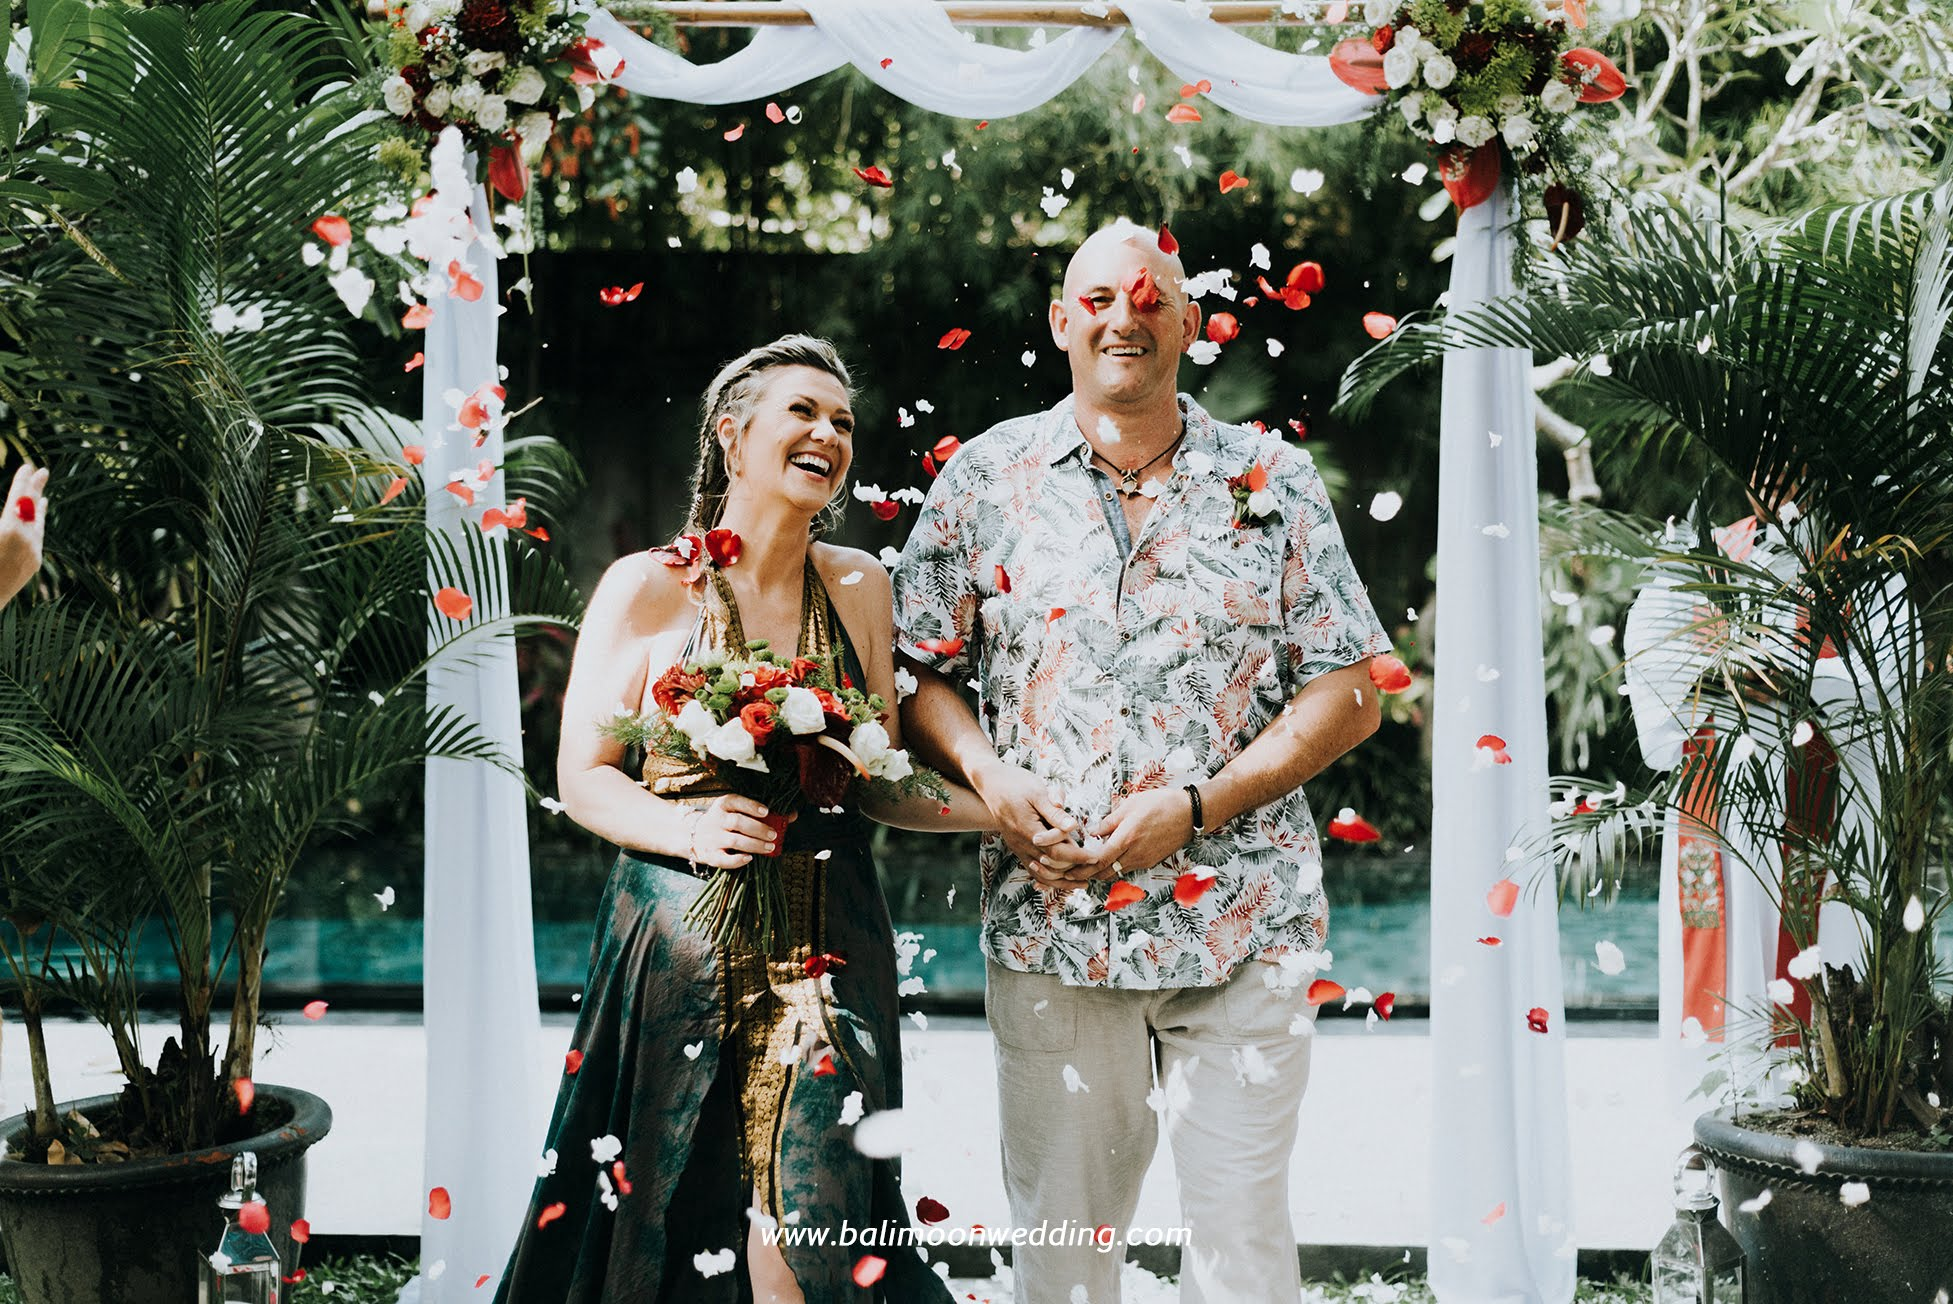 Bali Moon Wedding Review from Richard & Lindsey (12)